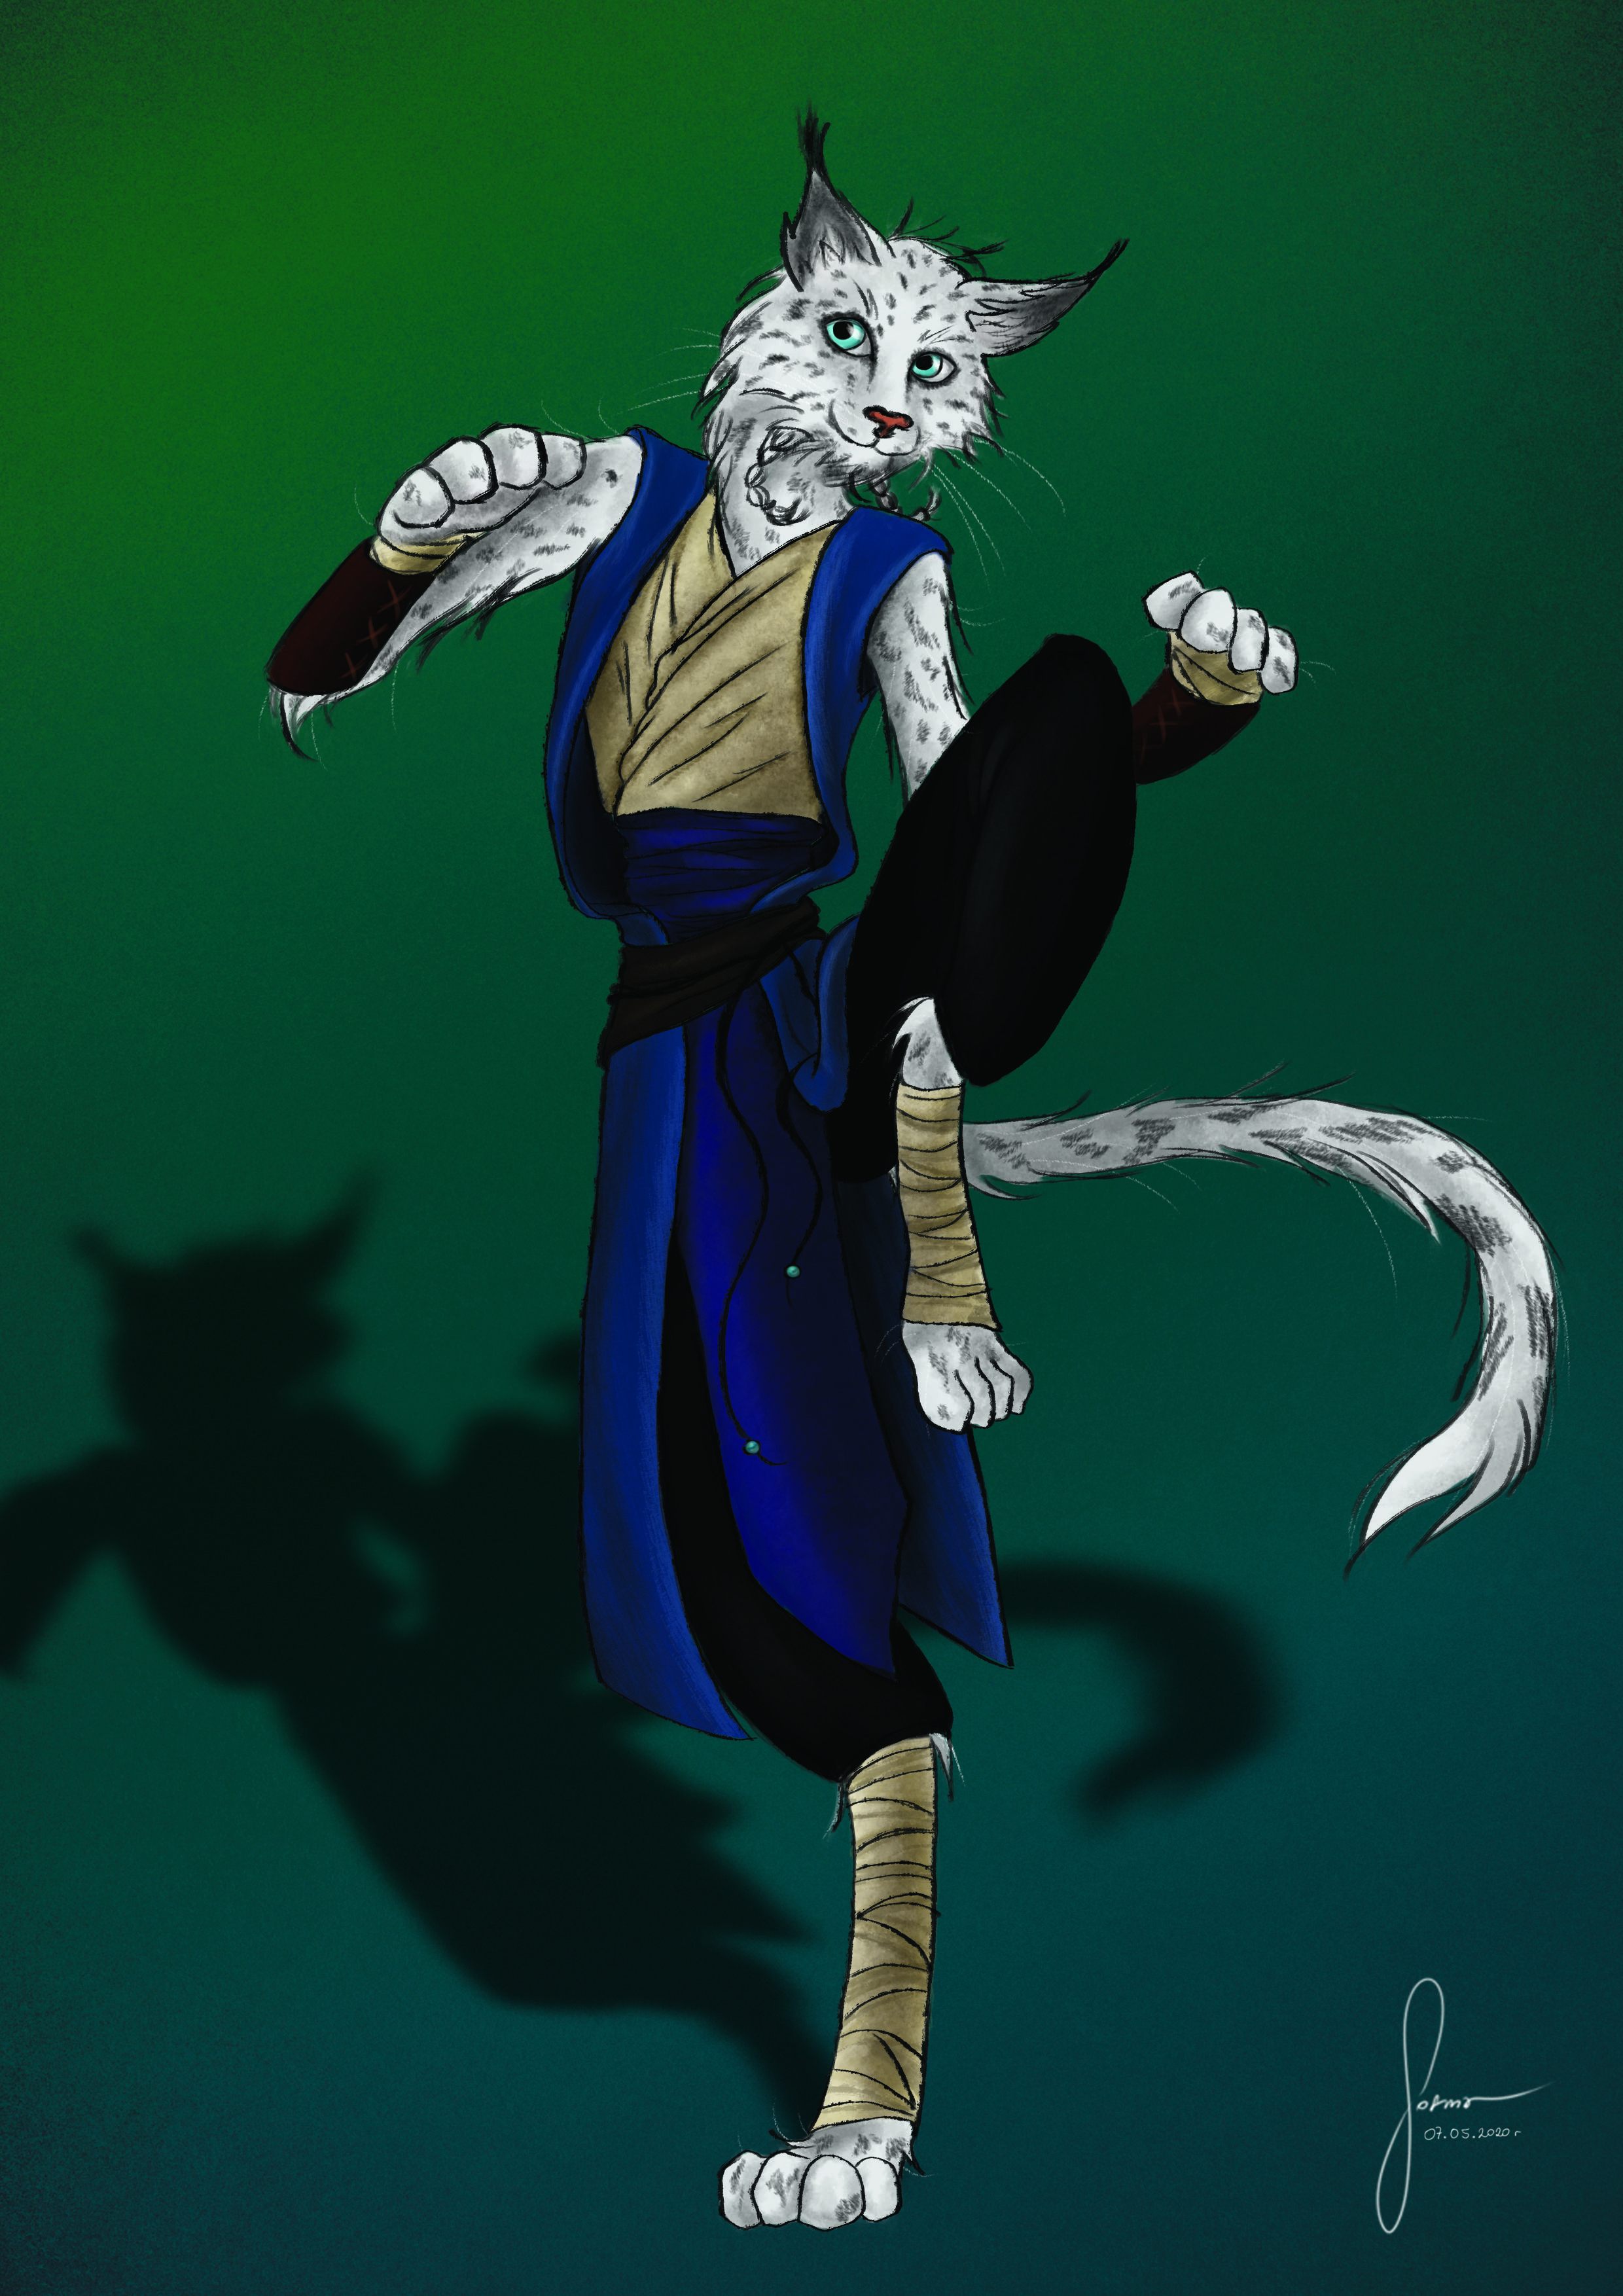 Sky Tabaxi Monk Dnd Em 2020 Design De Personagens Personagens Greetings my friends, here's this week's character: pinterest